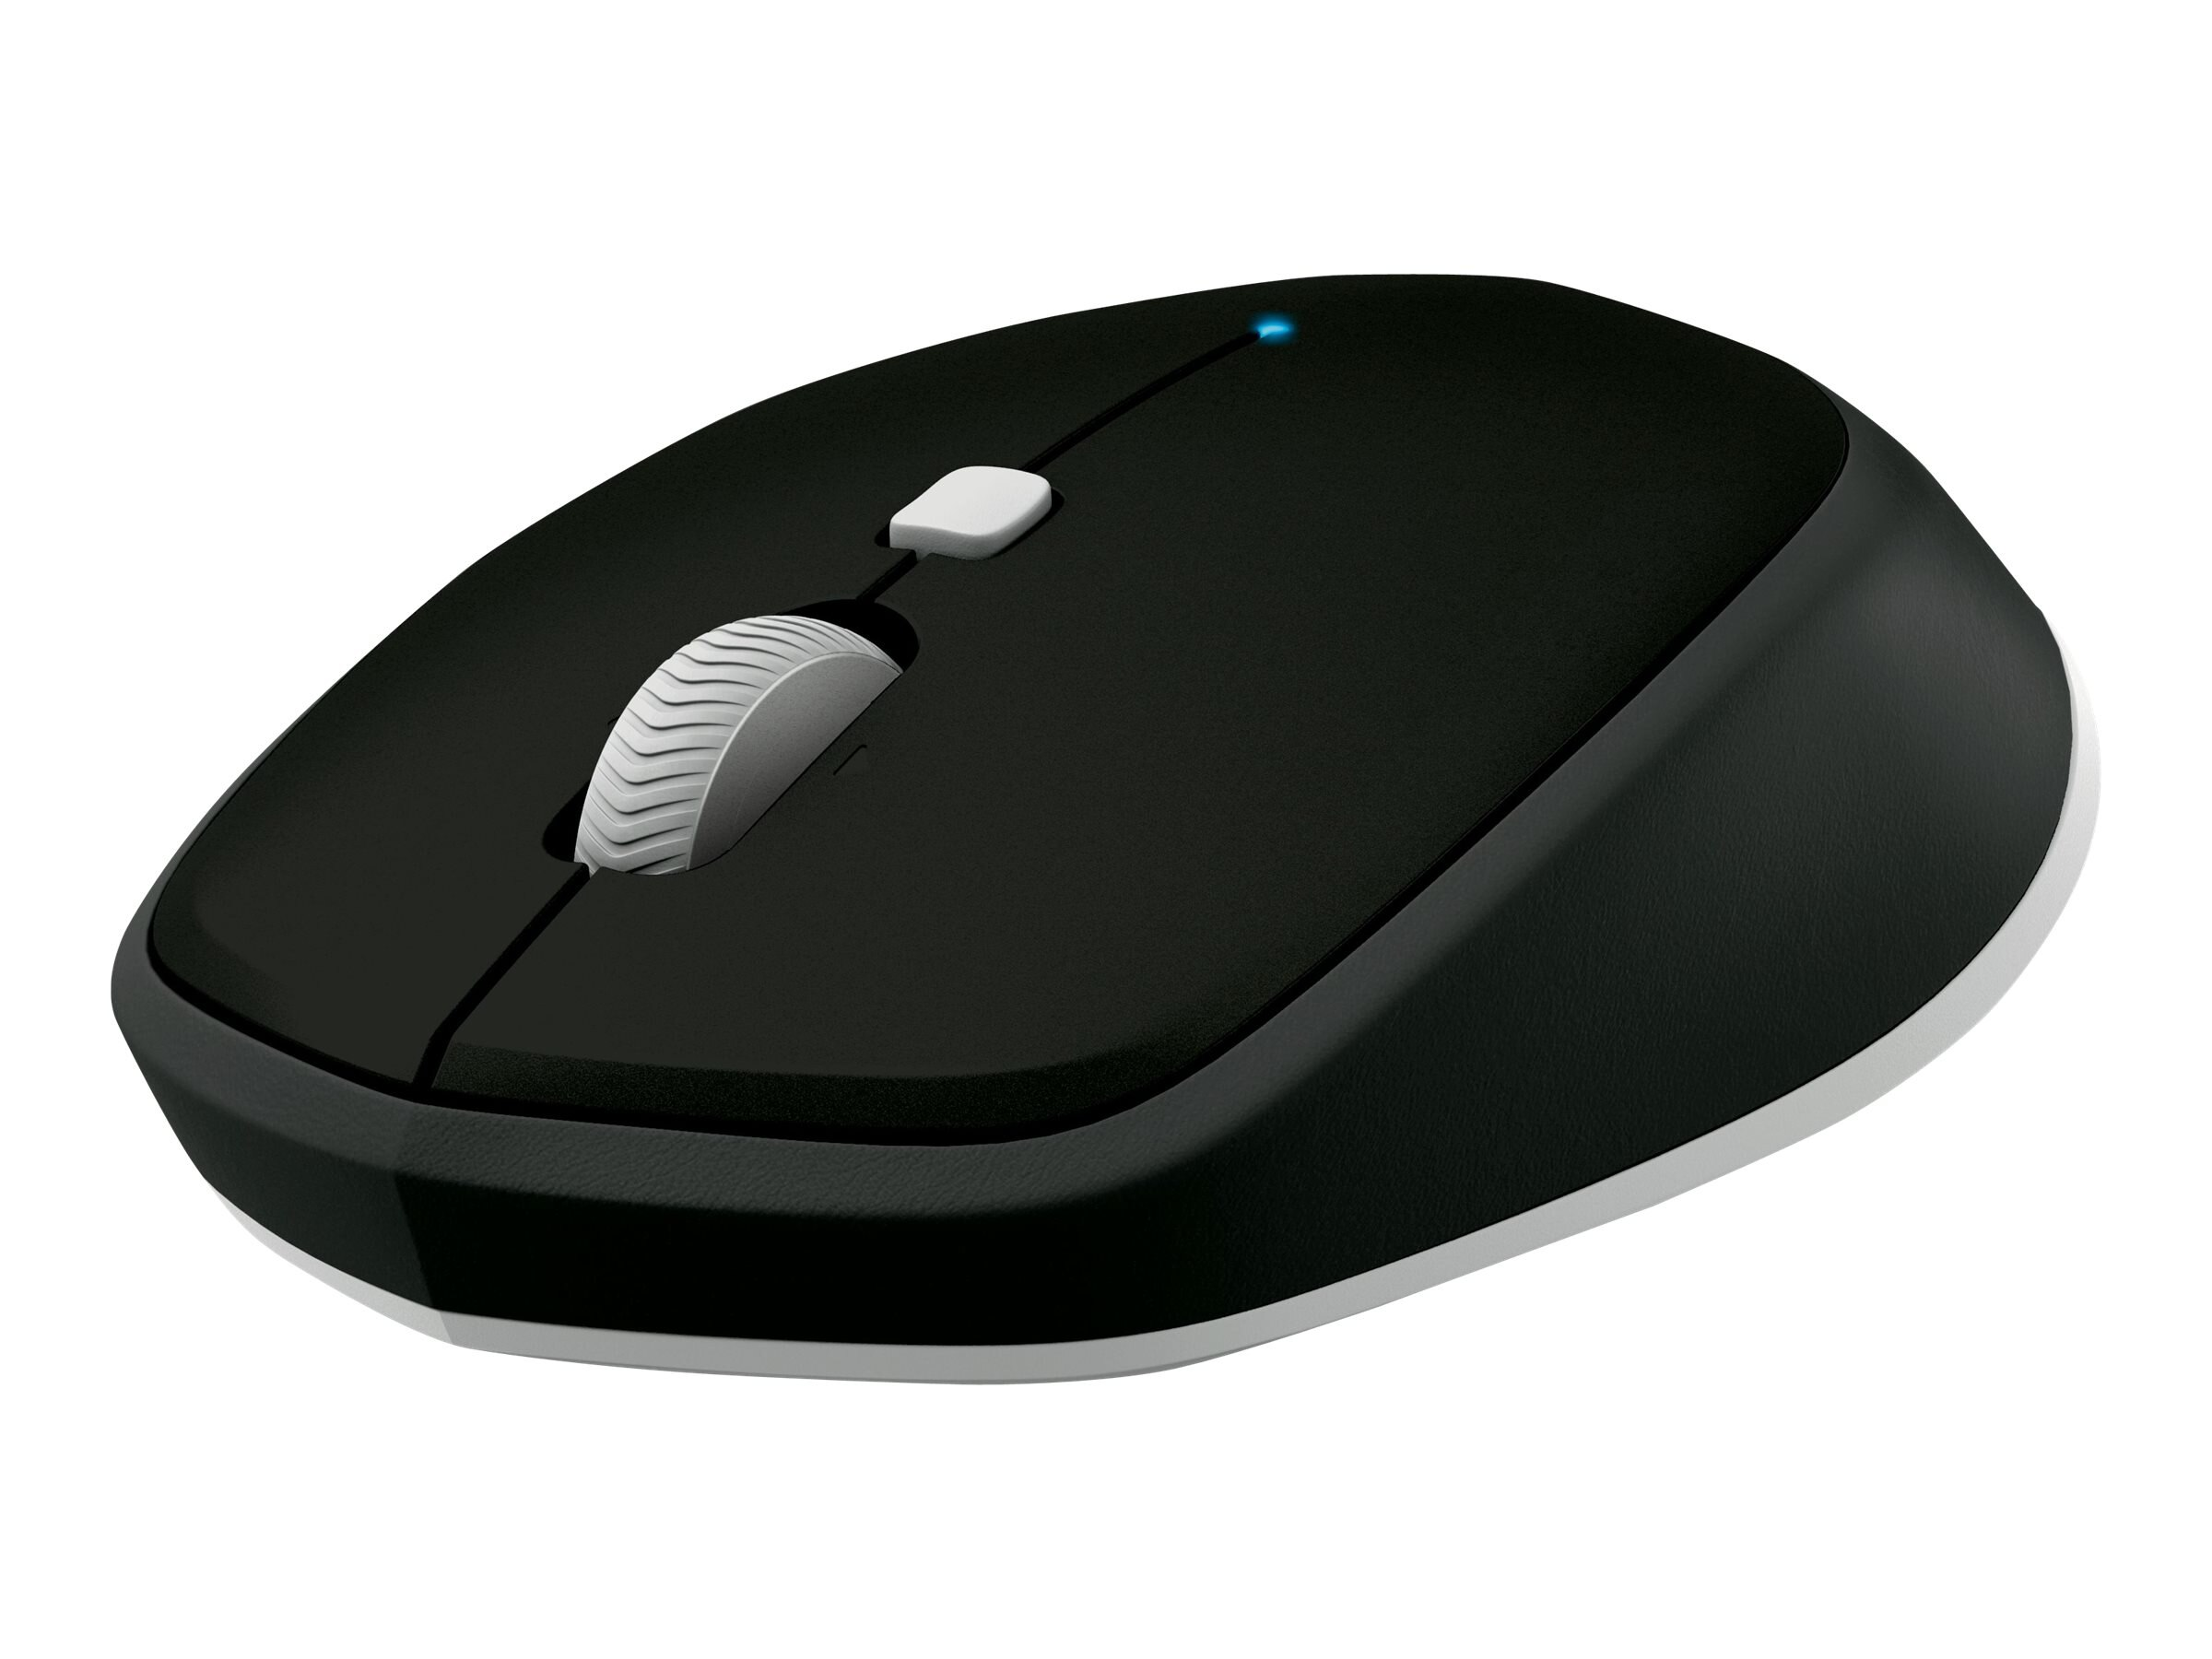 Logitech M535 BT Mouse, Black, 910-004432, 29491149, Mice & Cursor Control Devices